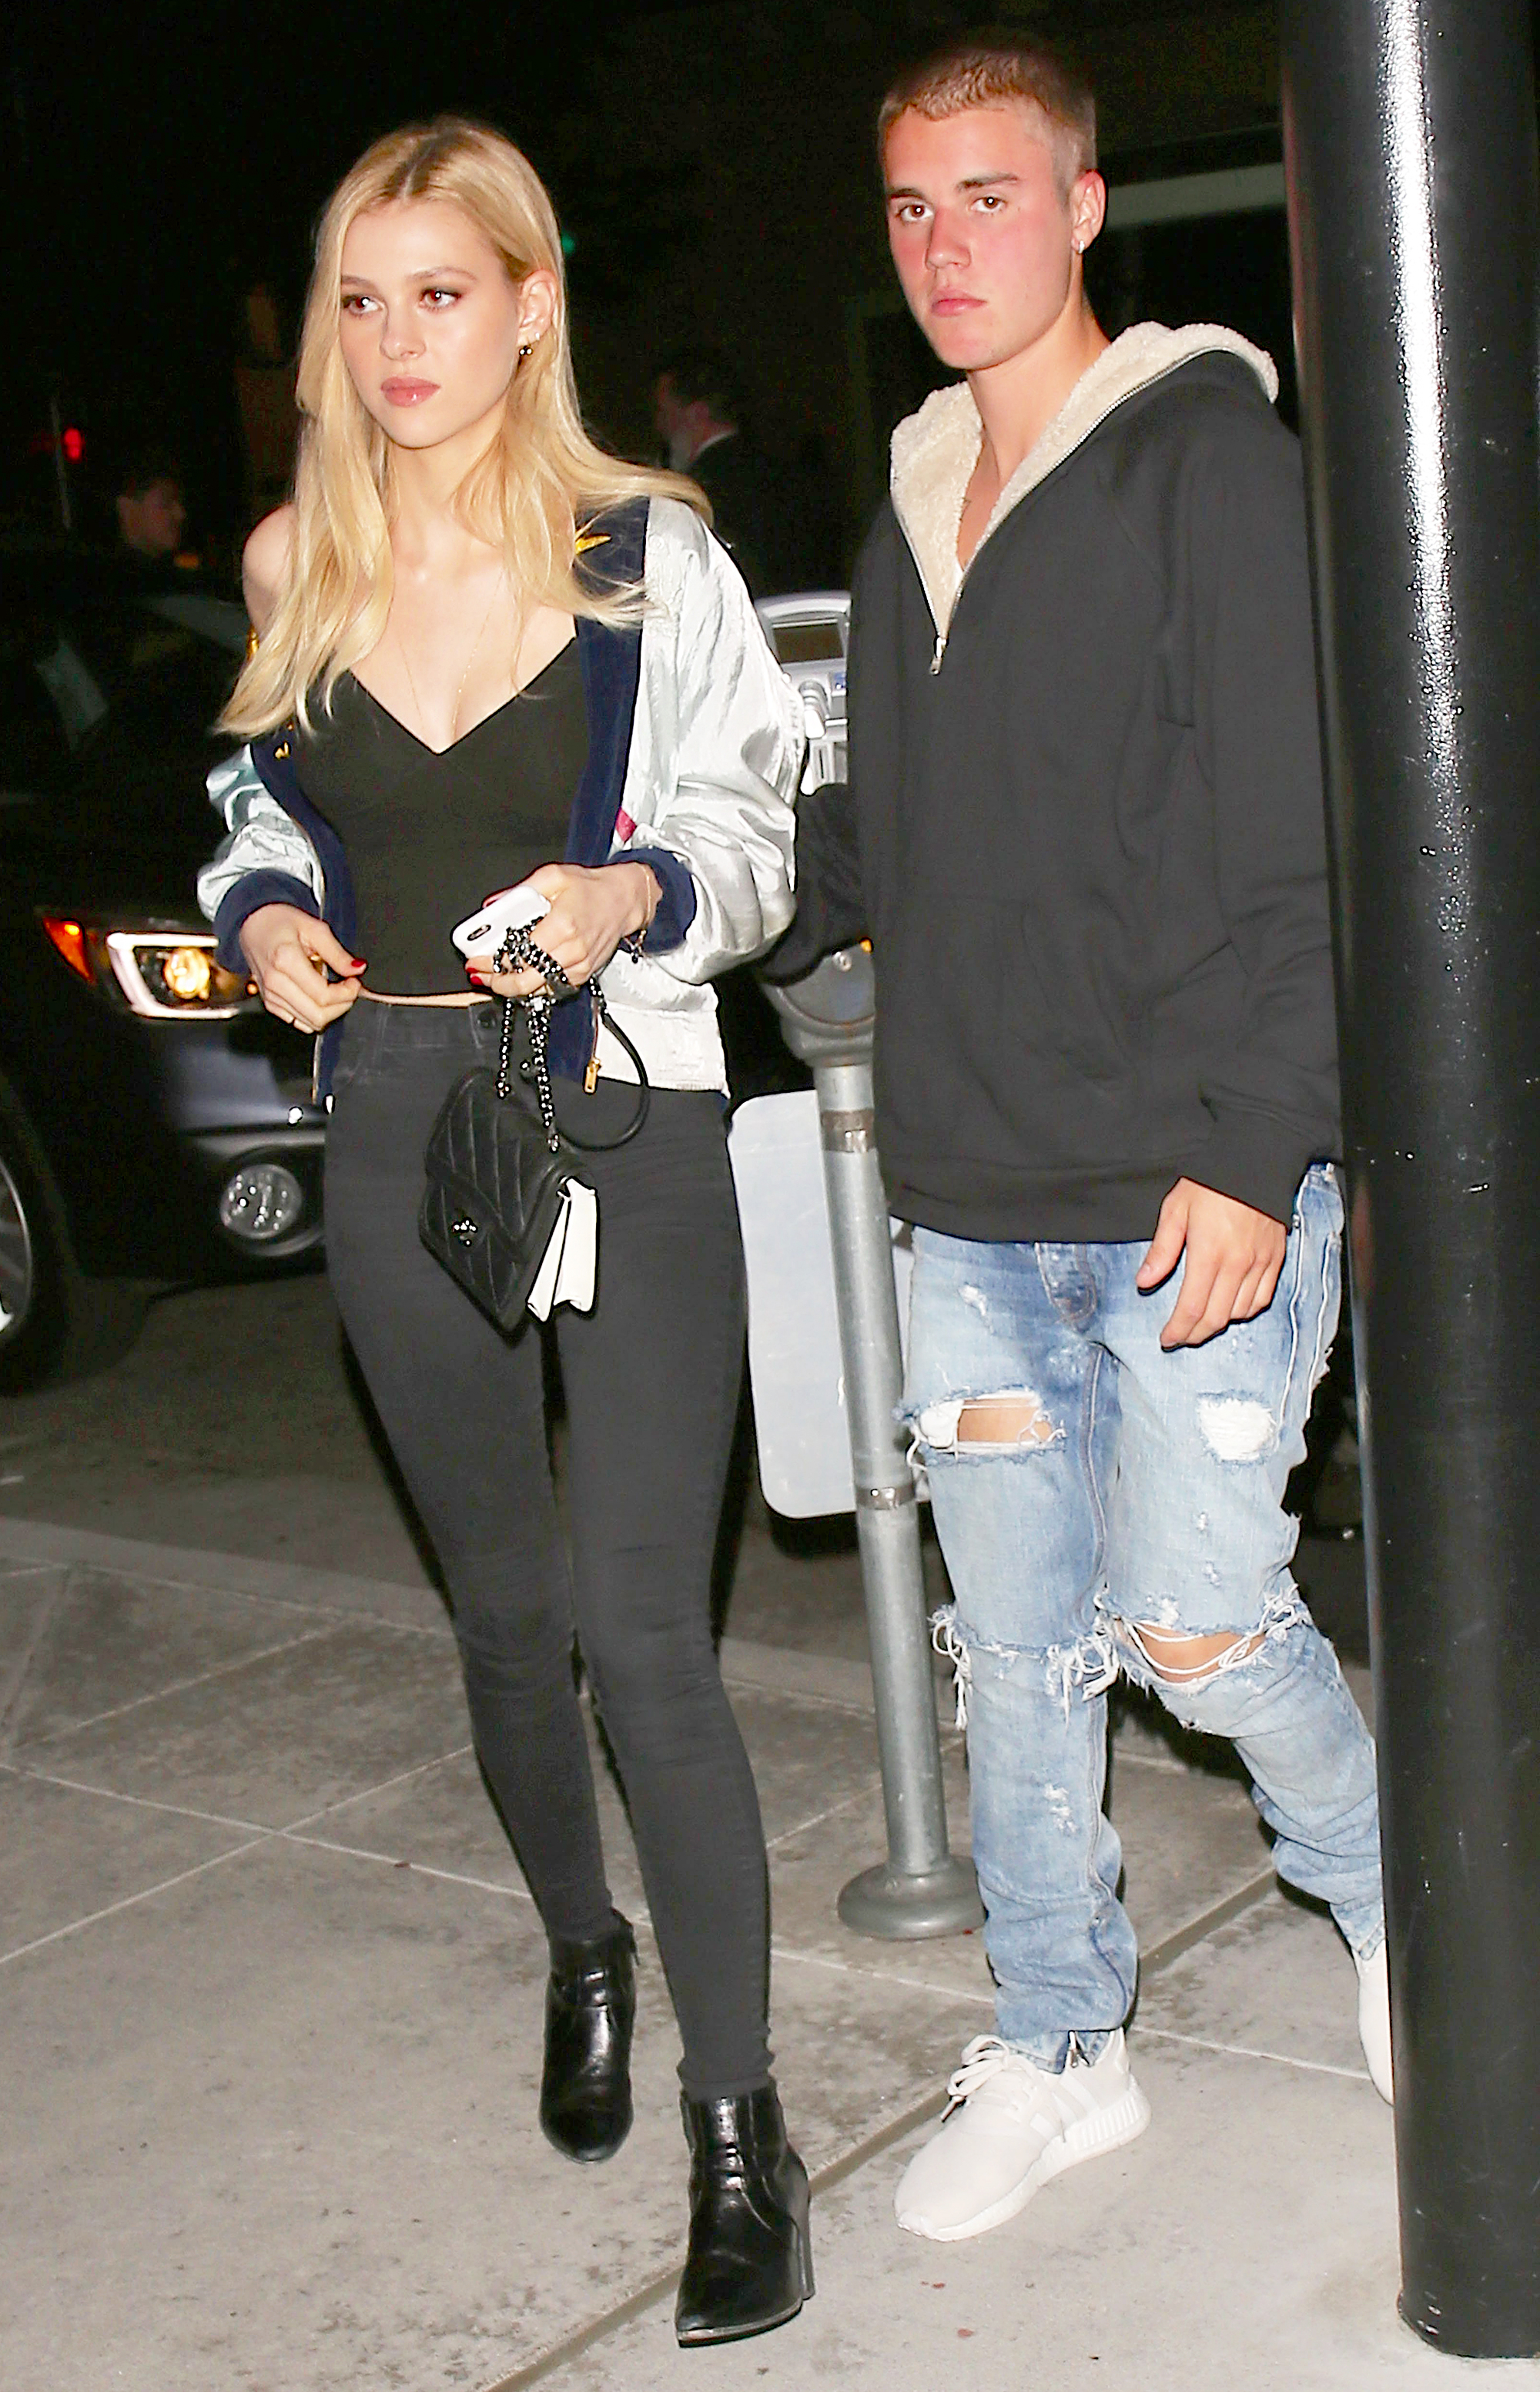 Lonely Girl Walking Wallpaper Justin Bieber Spotted On Dinner Date With Nicola Peltz Pics